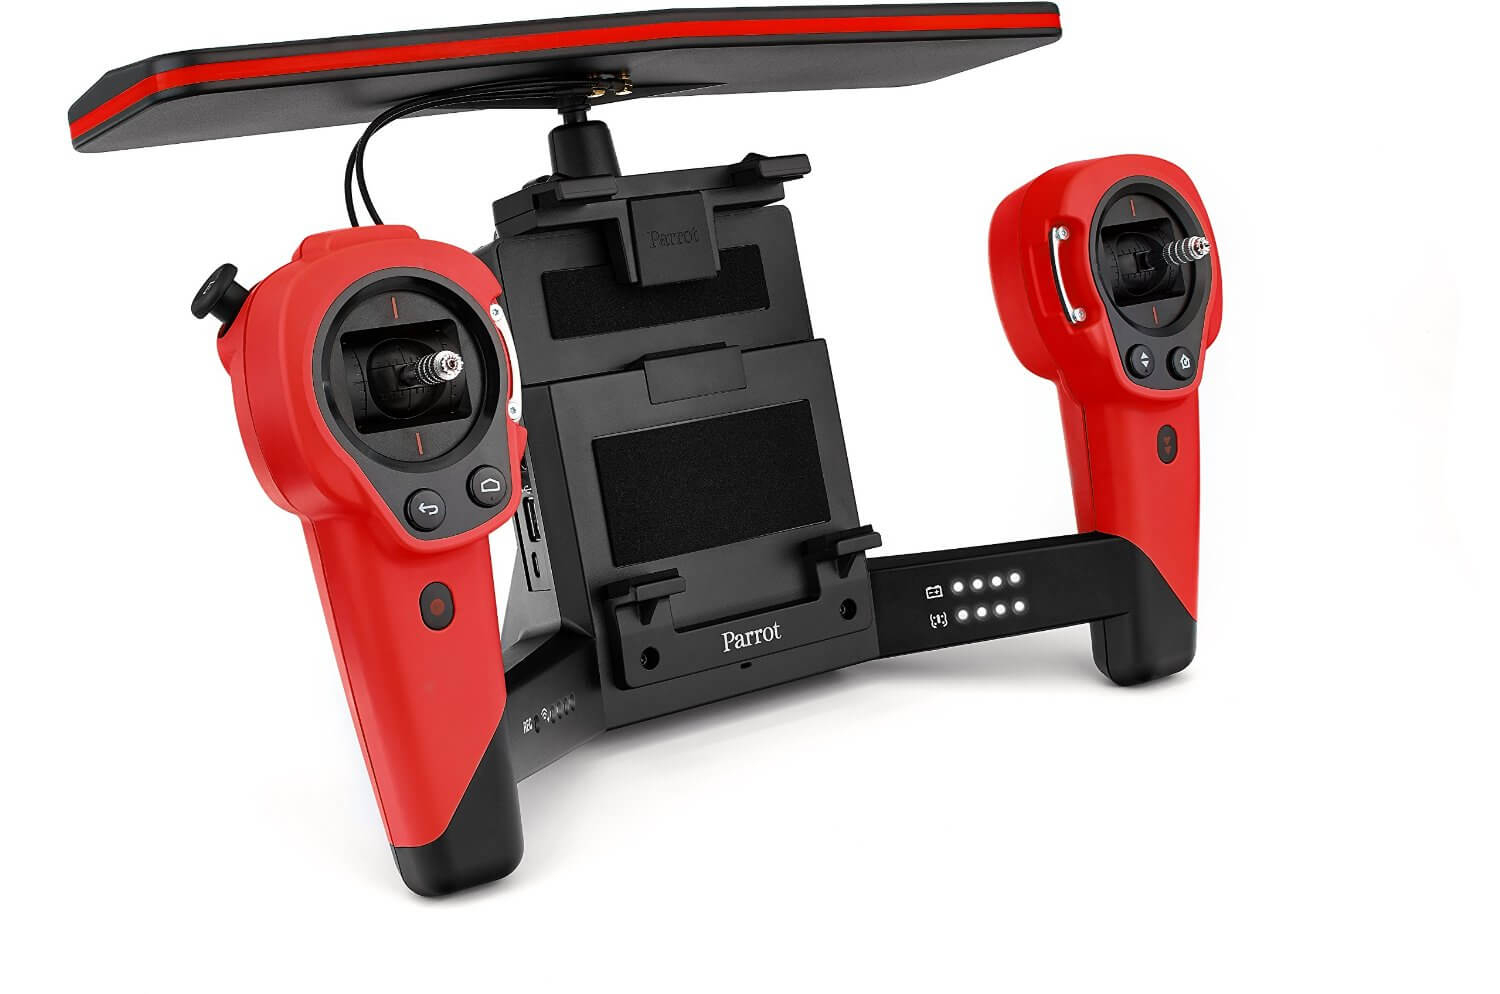 parrot skycontroller for bebop drone amplified wi fi 36 dbm radio for ios and android red. Black Bedroom Furniture Sets. Home Design Ideas